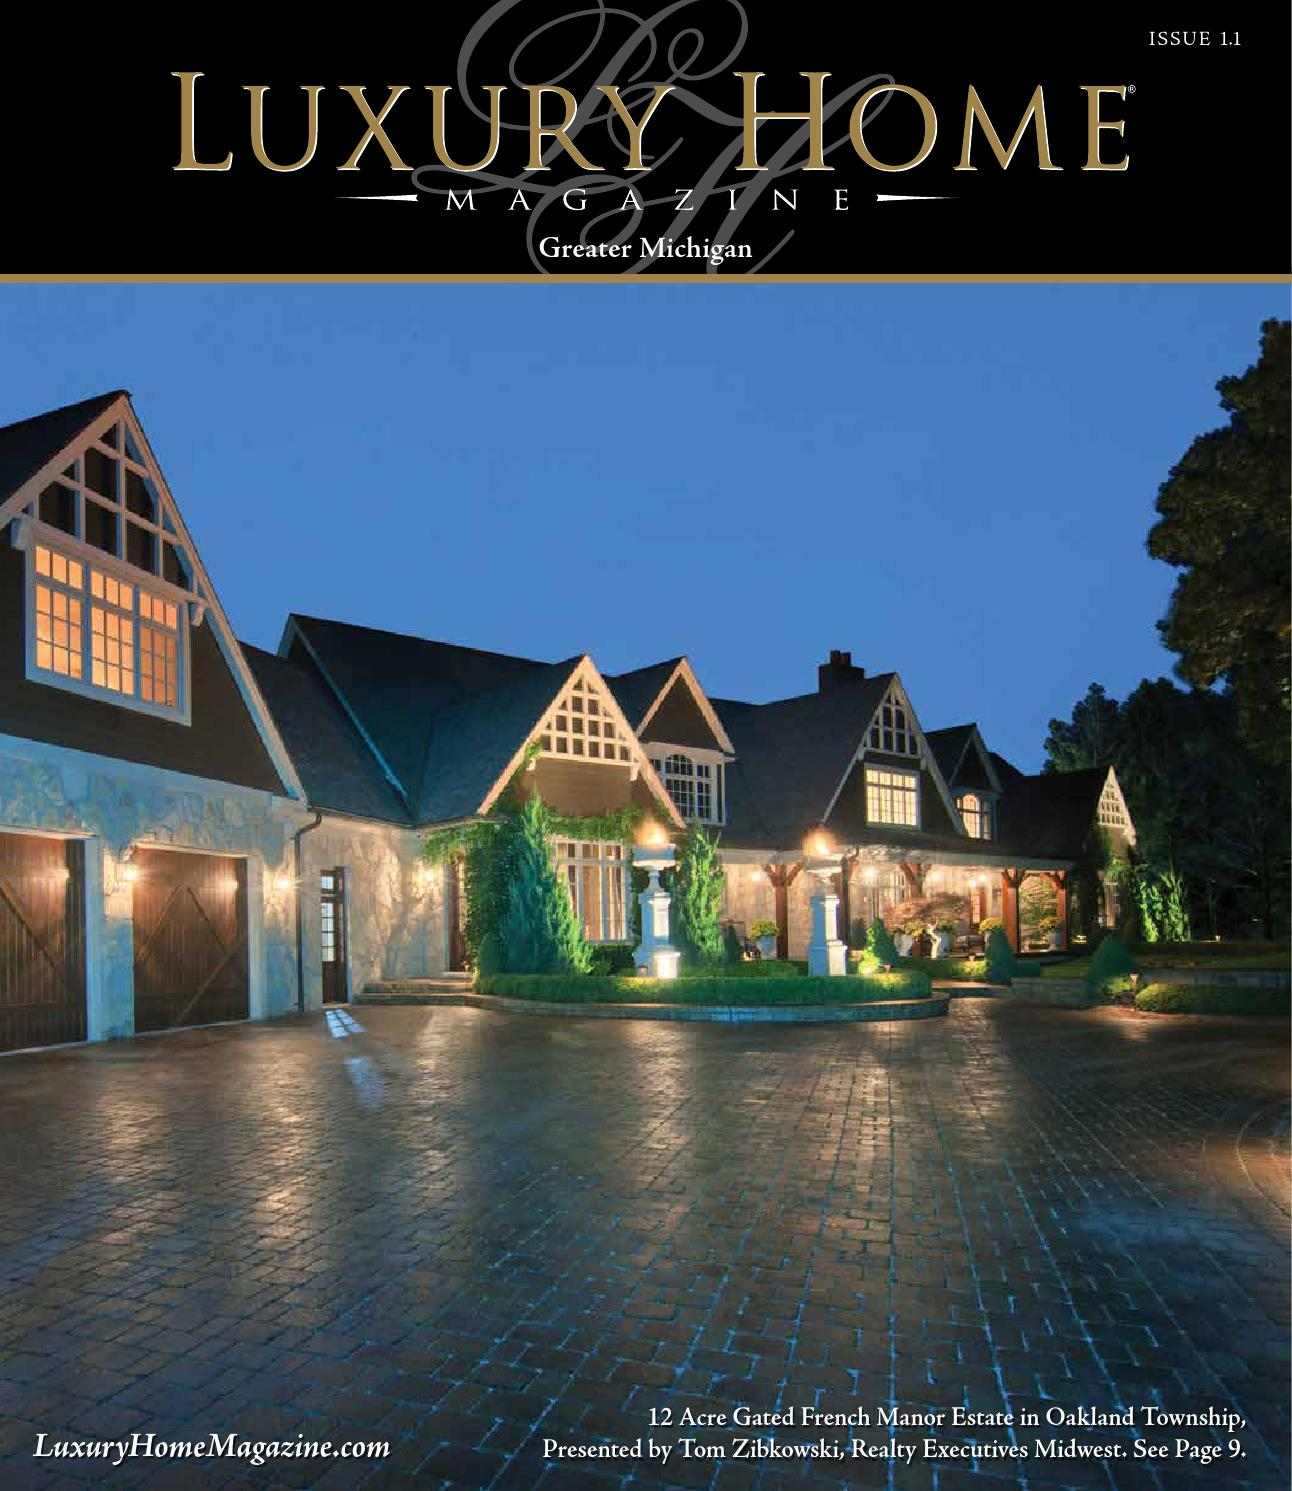 Midwest Luxury Lake Homes: Luxury Home Magazine Michigan Issue 1.1 By Luxury Home